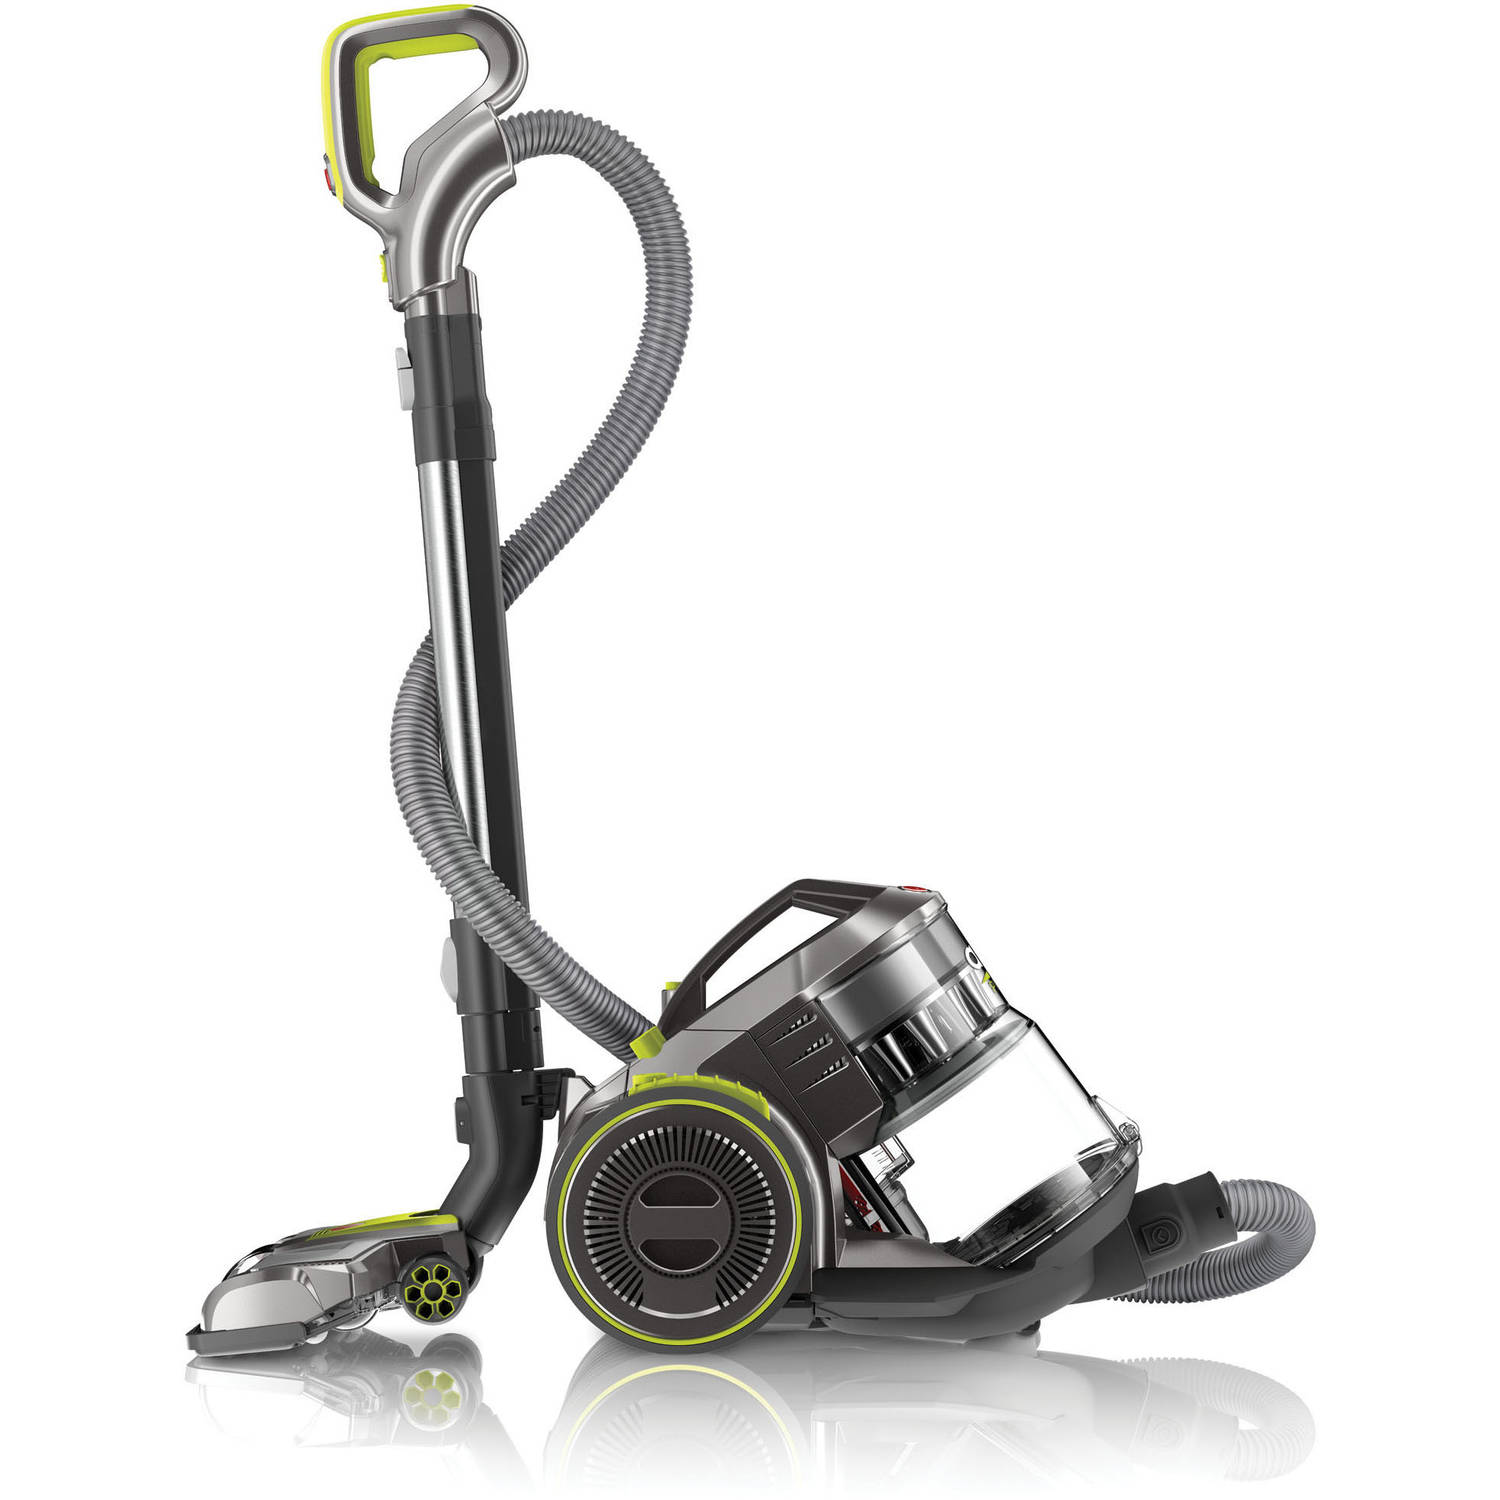 Hoover Air Pro Bagless Canister Vacuum Cleaner, SH40075